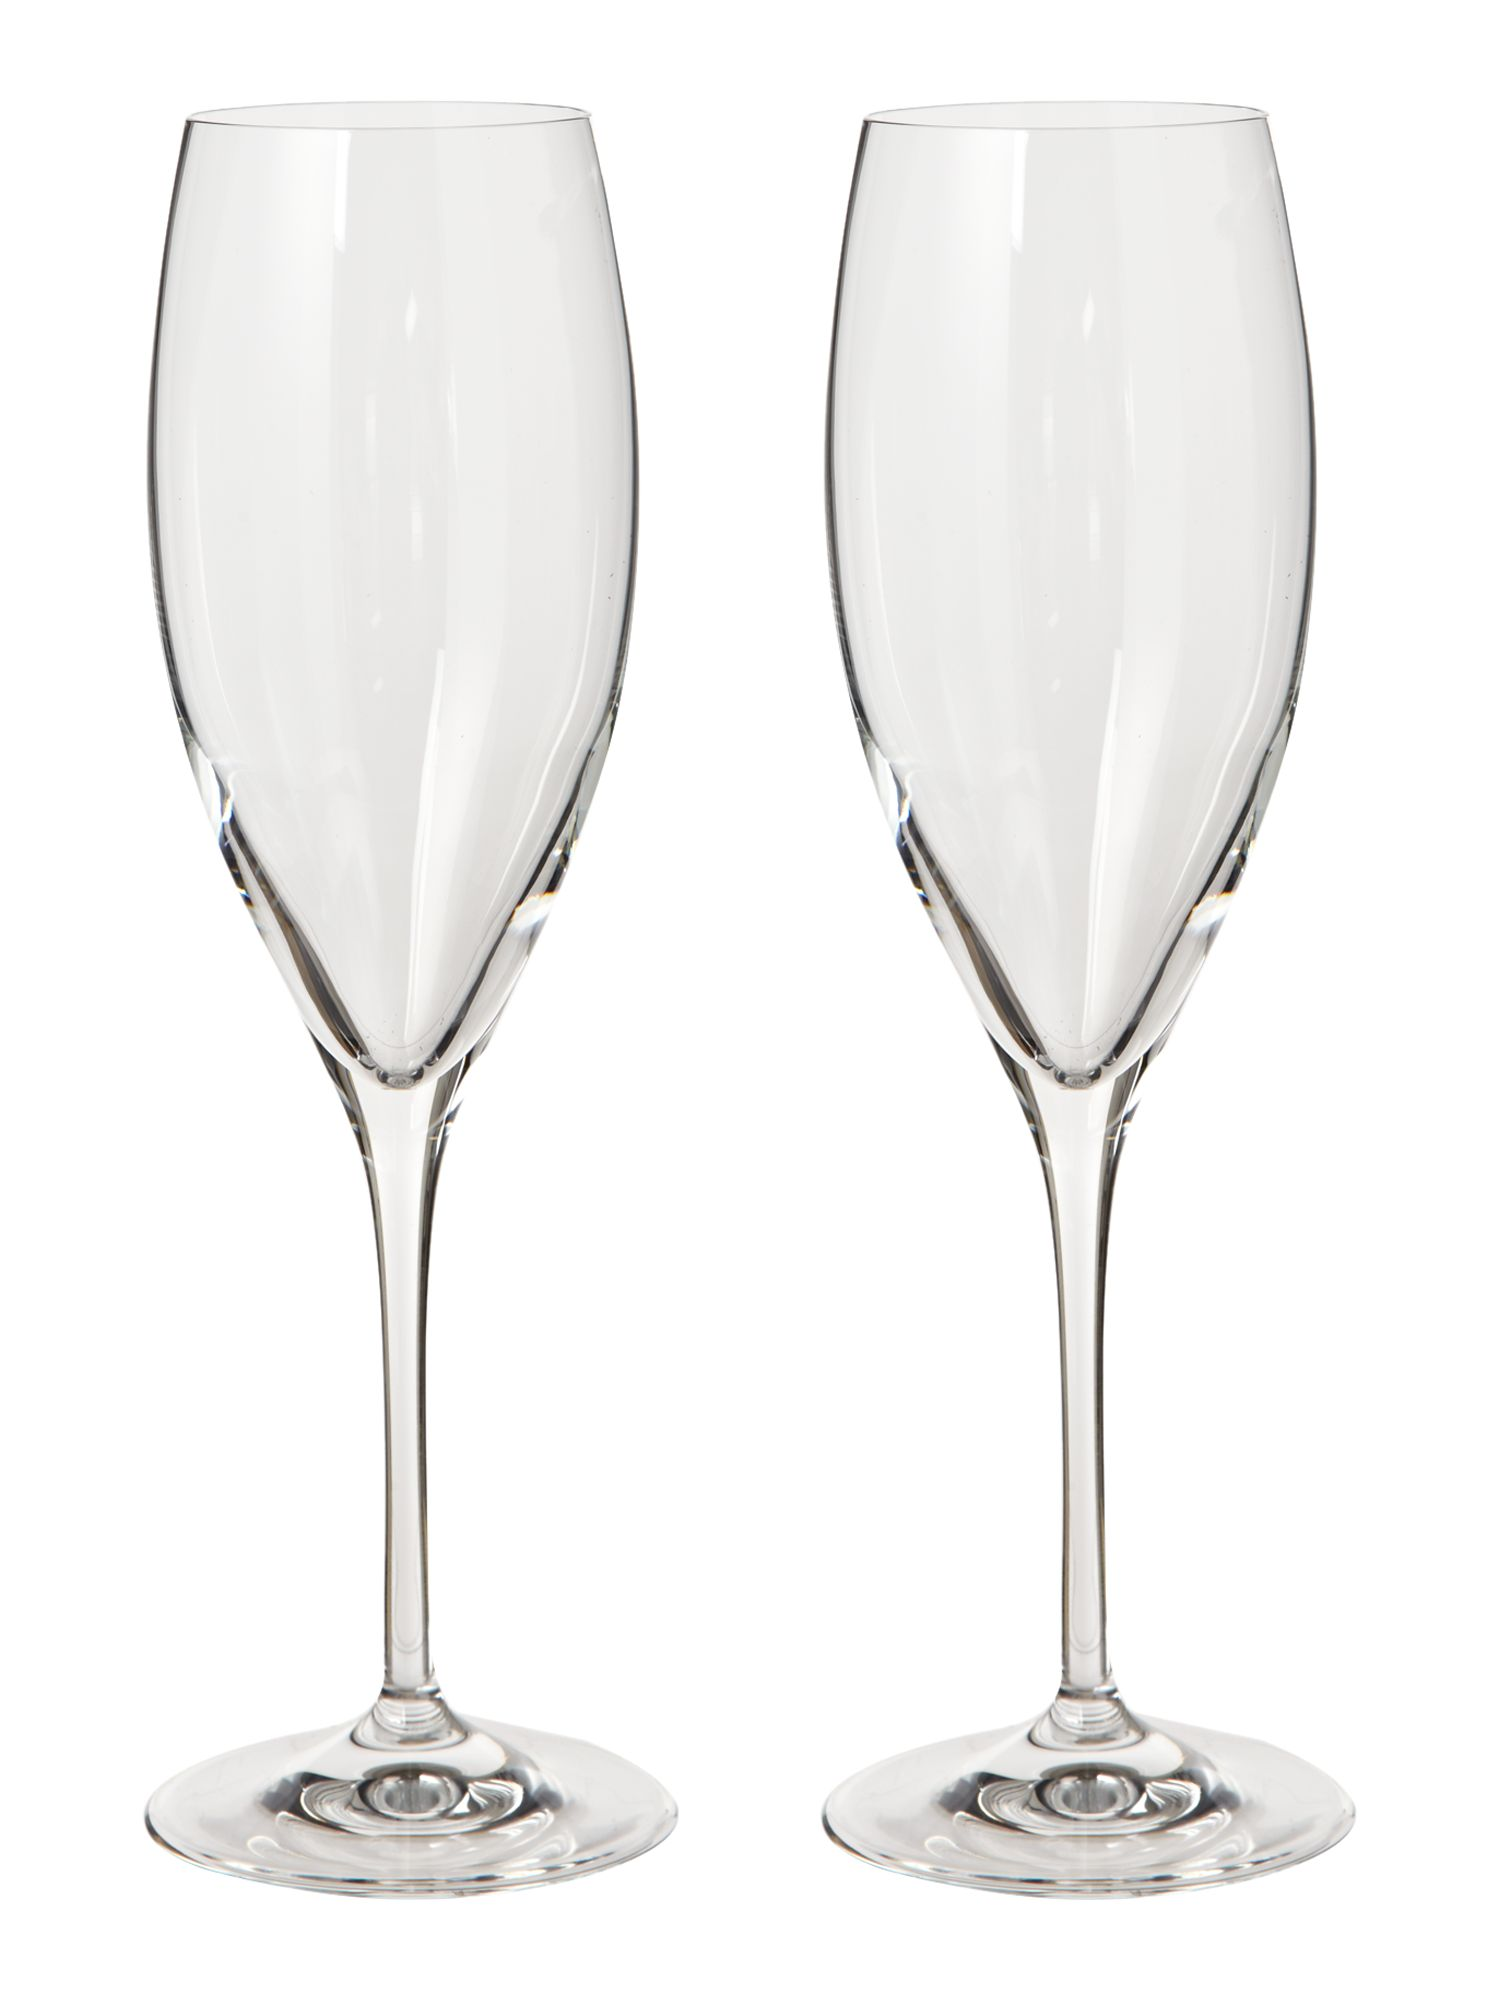 Vinum cuvee prestige glasses, box of 2